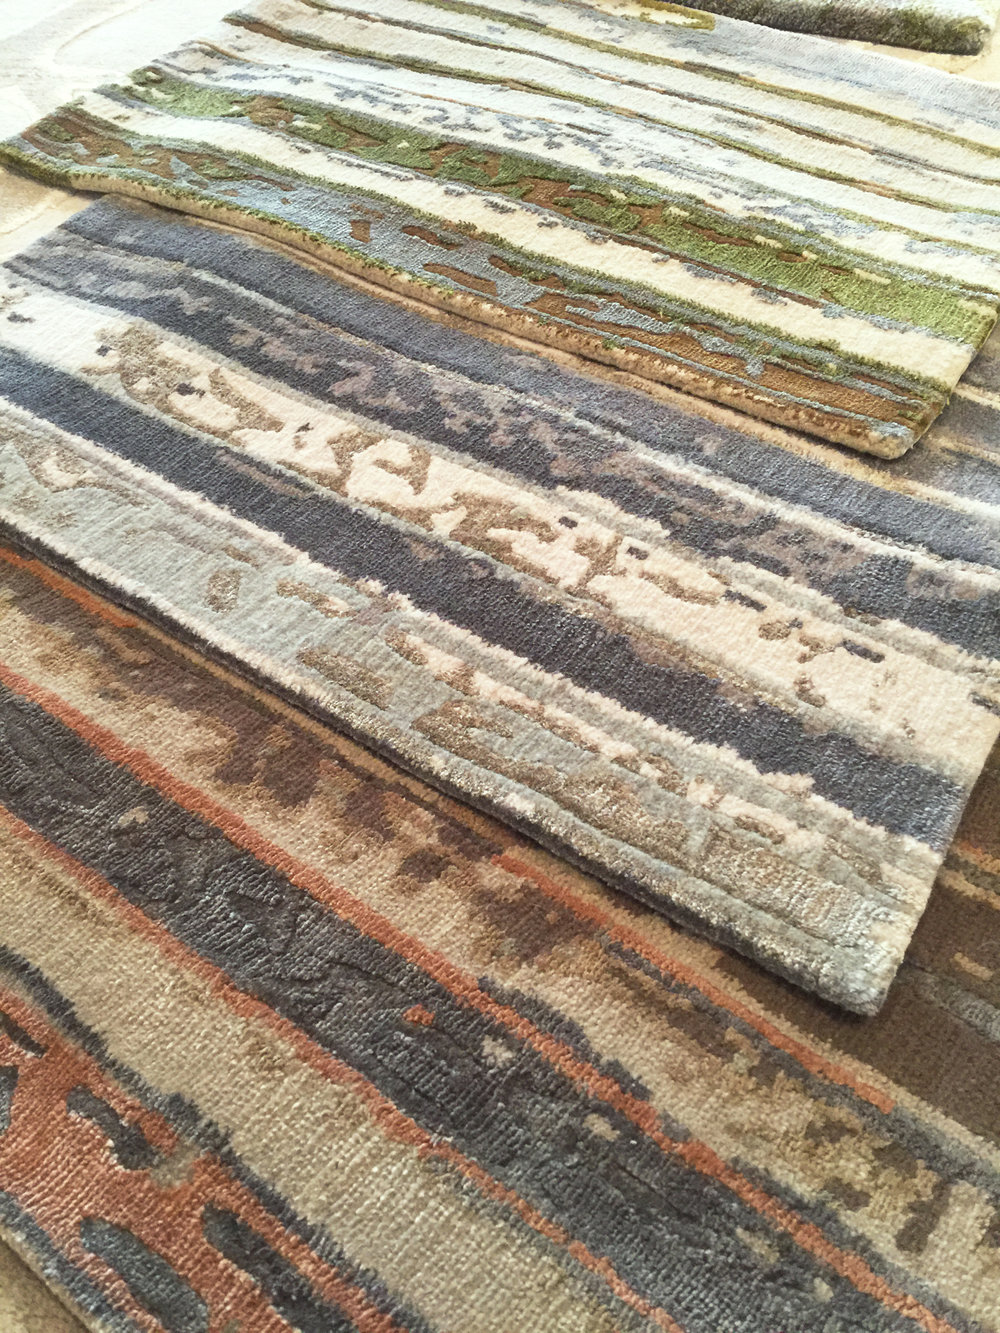 Custom Lapchi rugs